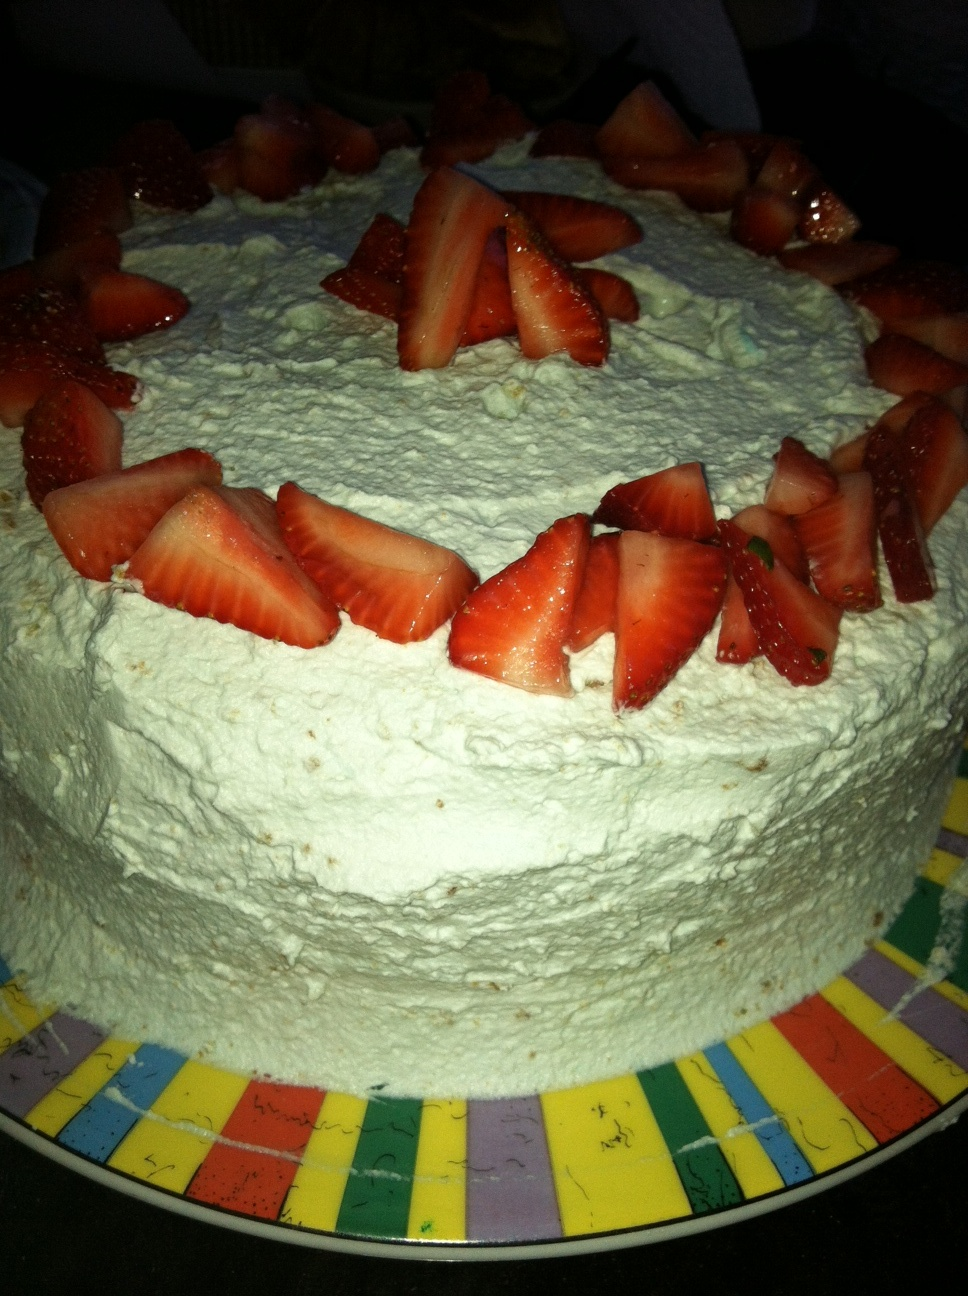 Lemon Poppy Seed Strawberry Cake with Lavender Whipped Cream